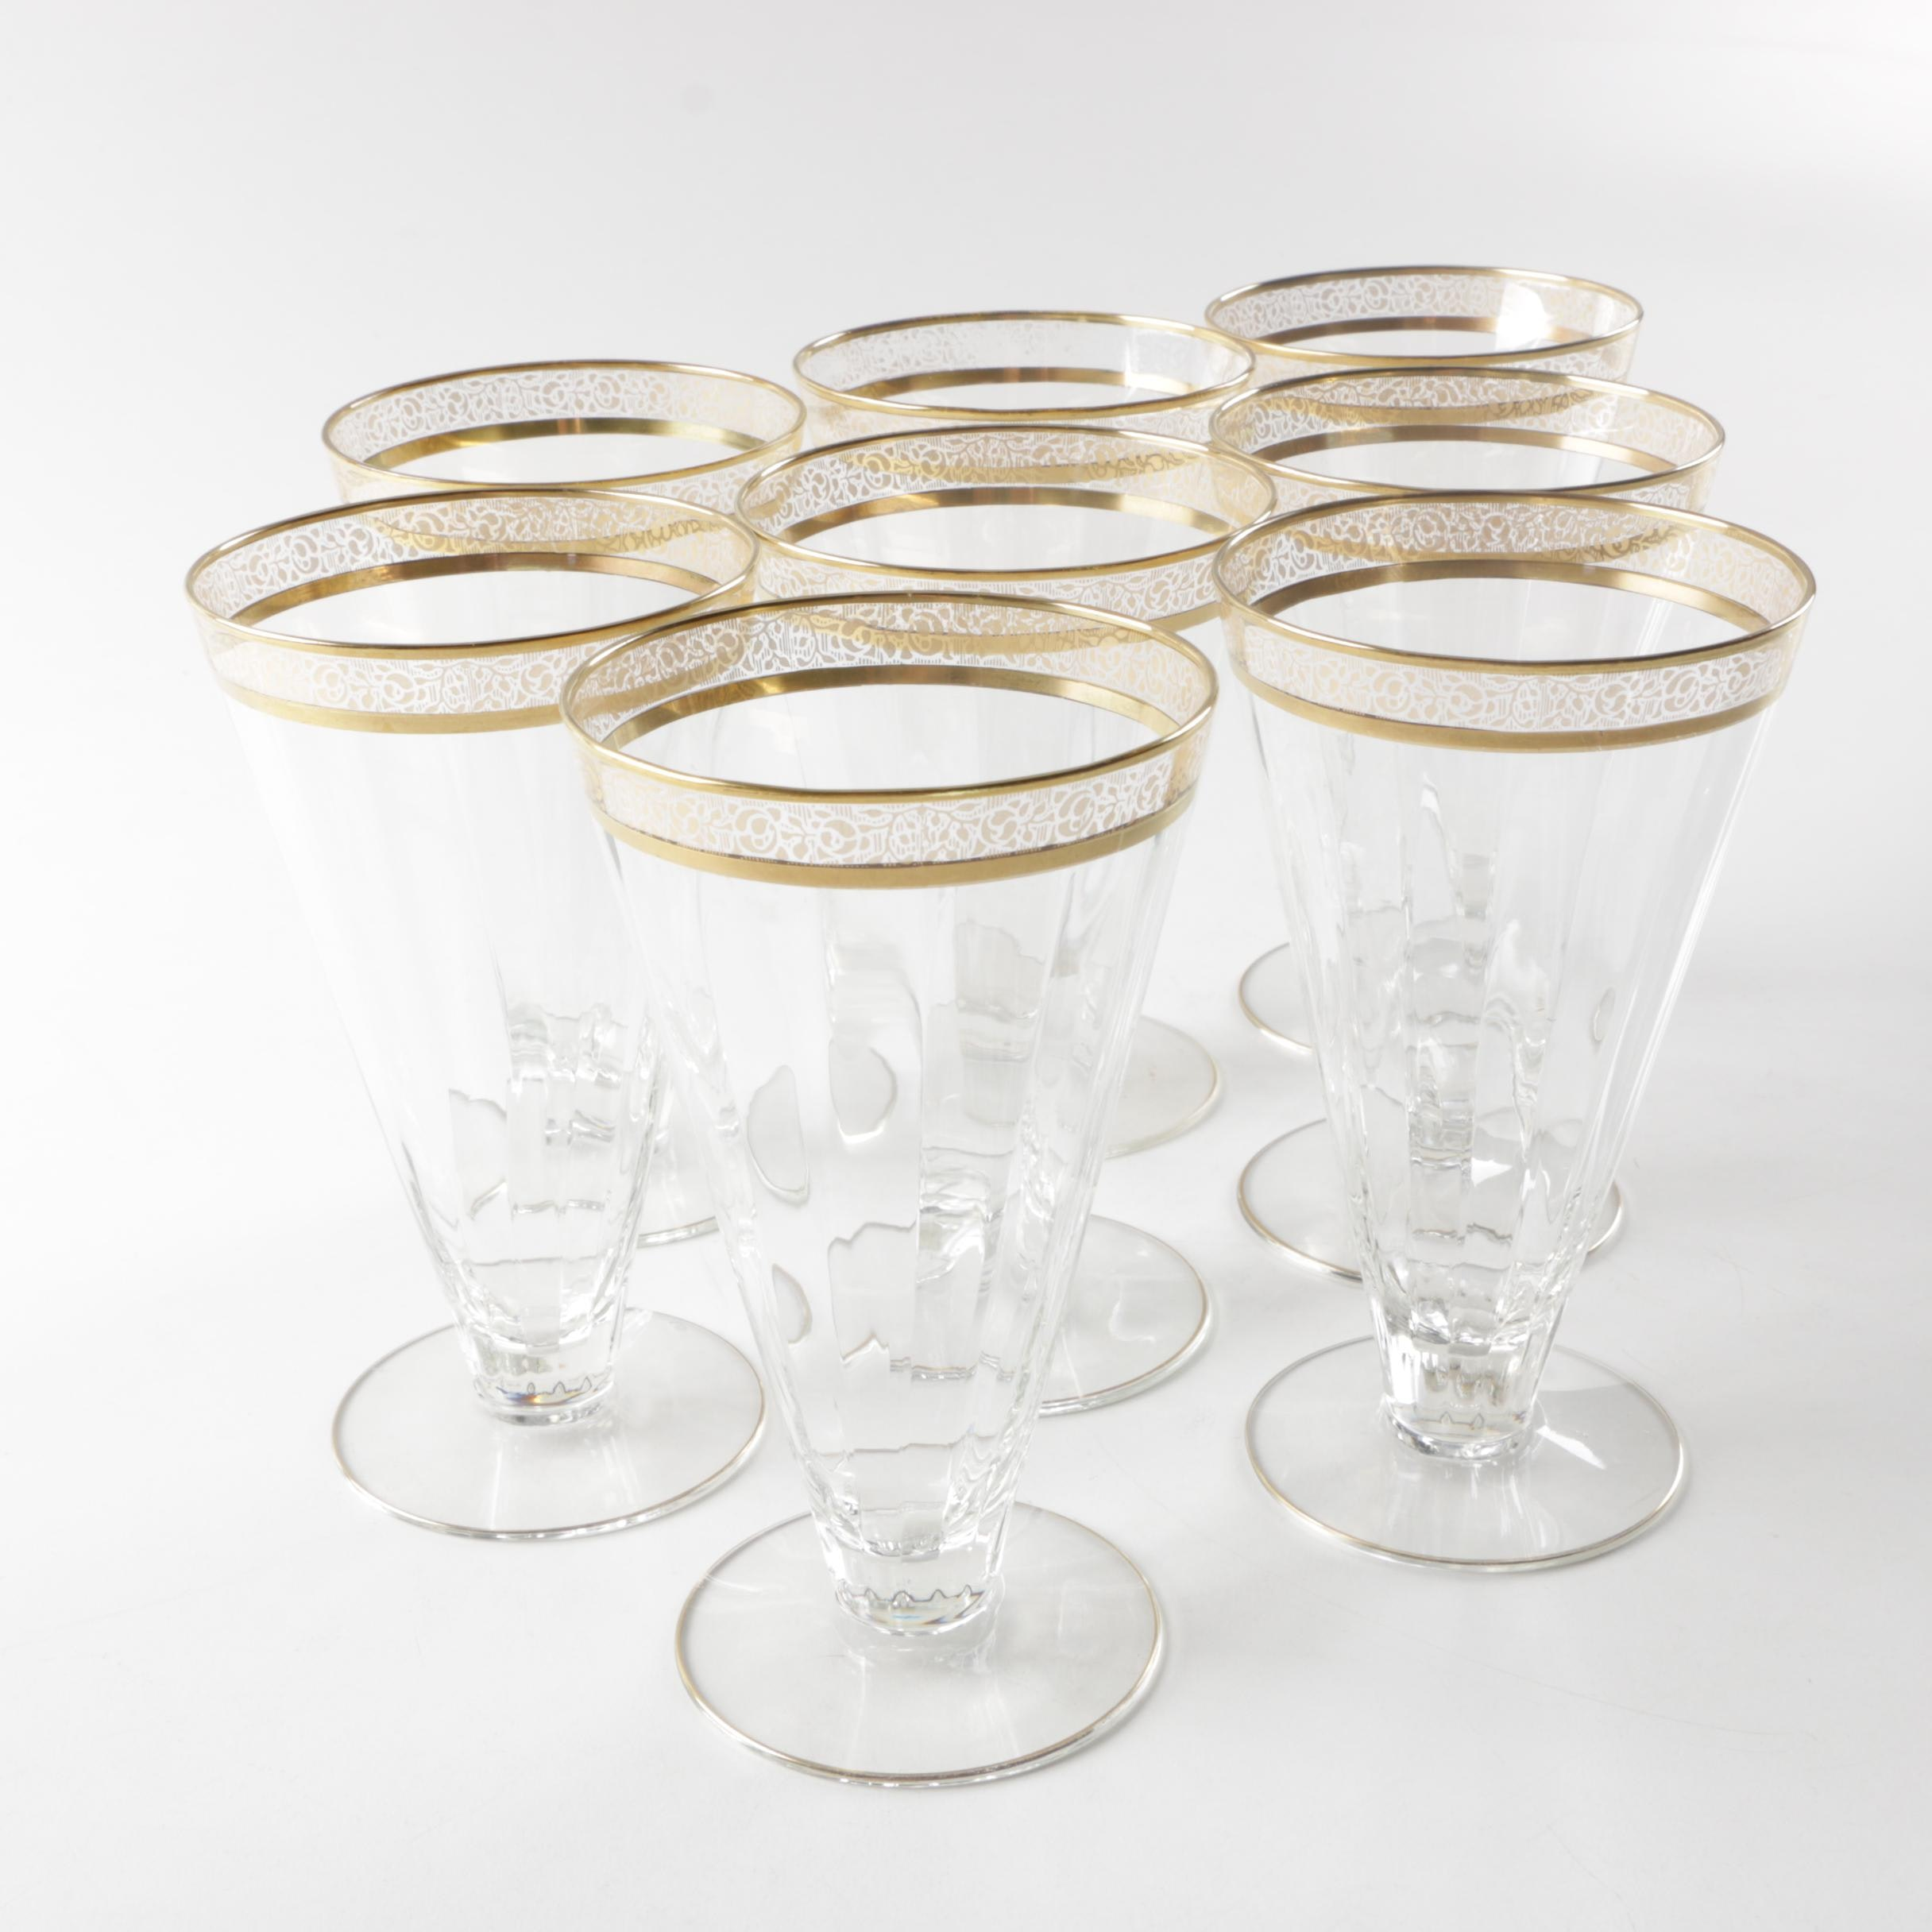 Vintage Gold Encrusted Iced Beverage Glasses in the style of Tiffin-Franciscan